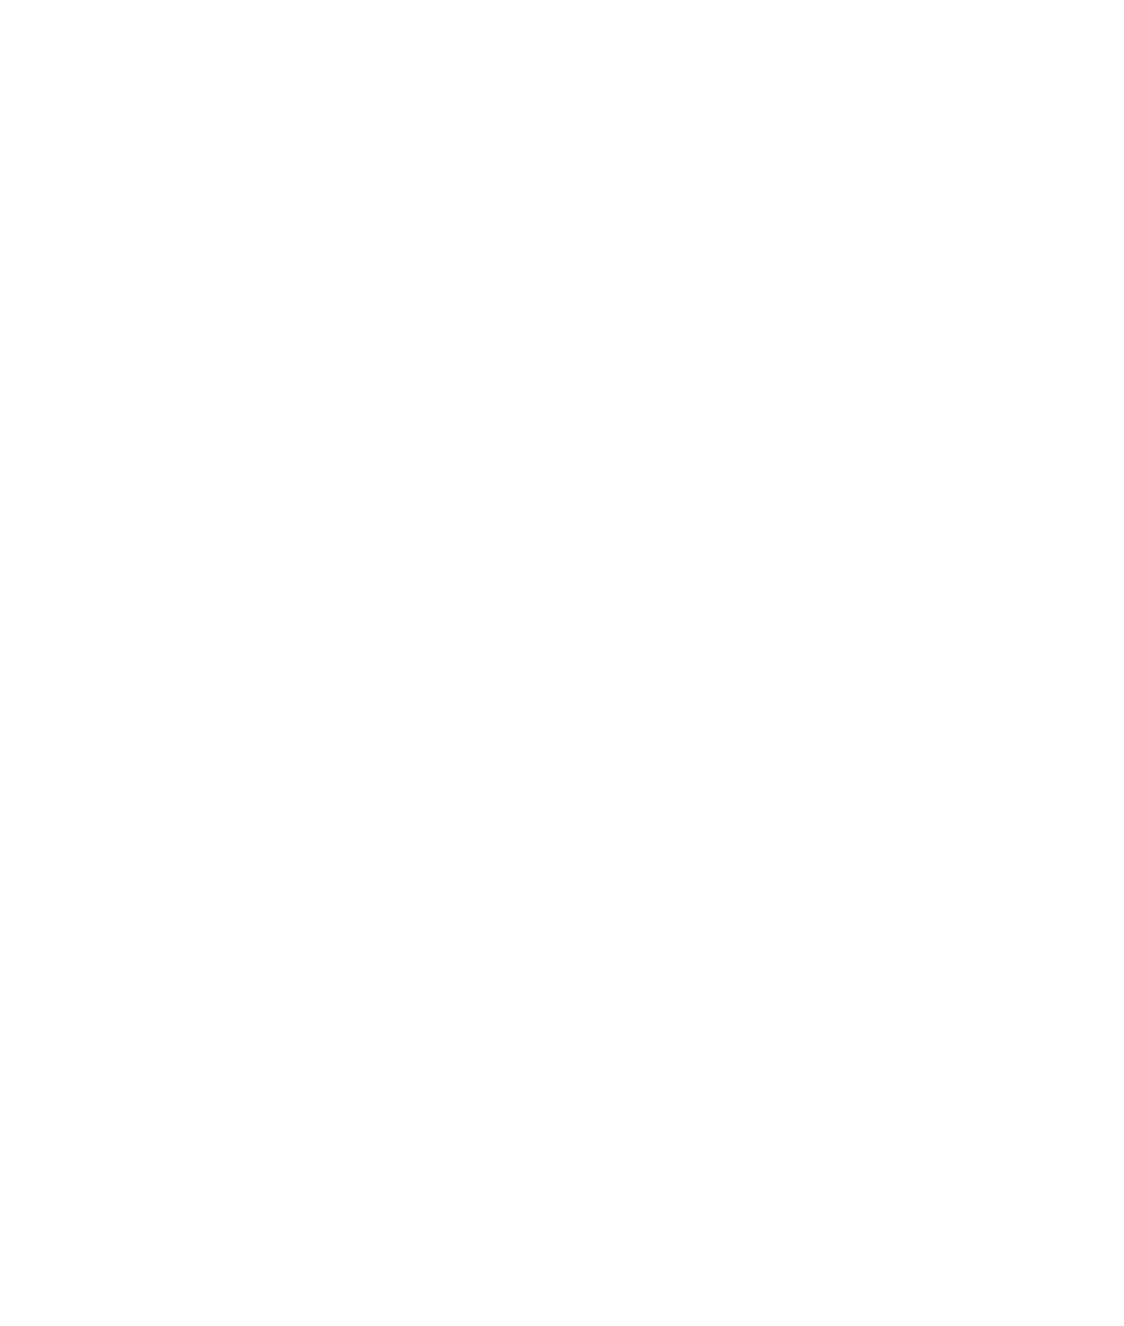 Mario Bouhaben Digital Marketing Logo